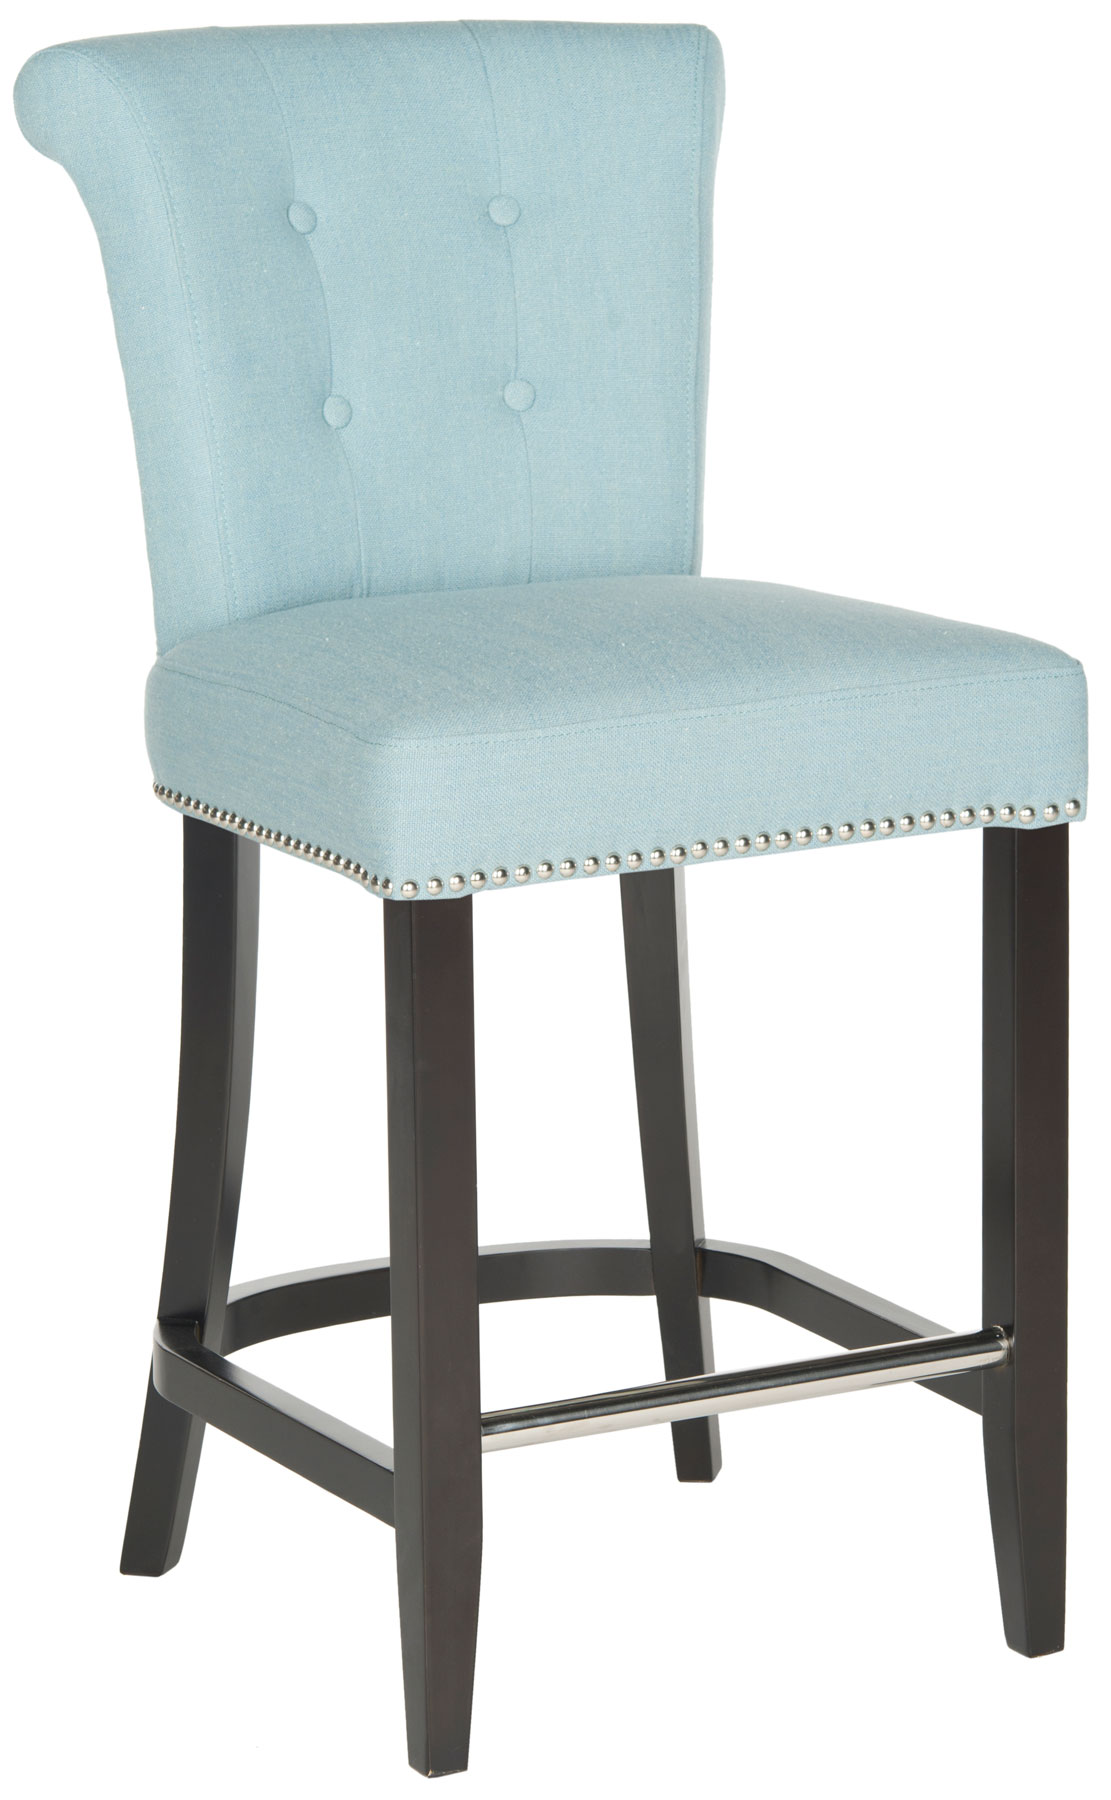 HUD8241C Counter Stools - Furniture by Safavieh